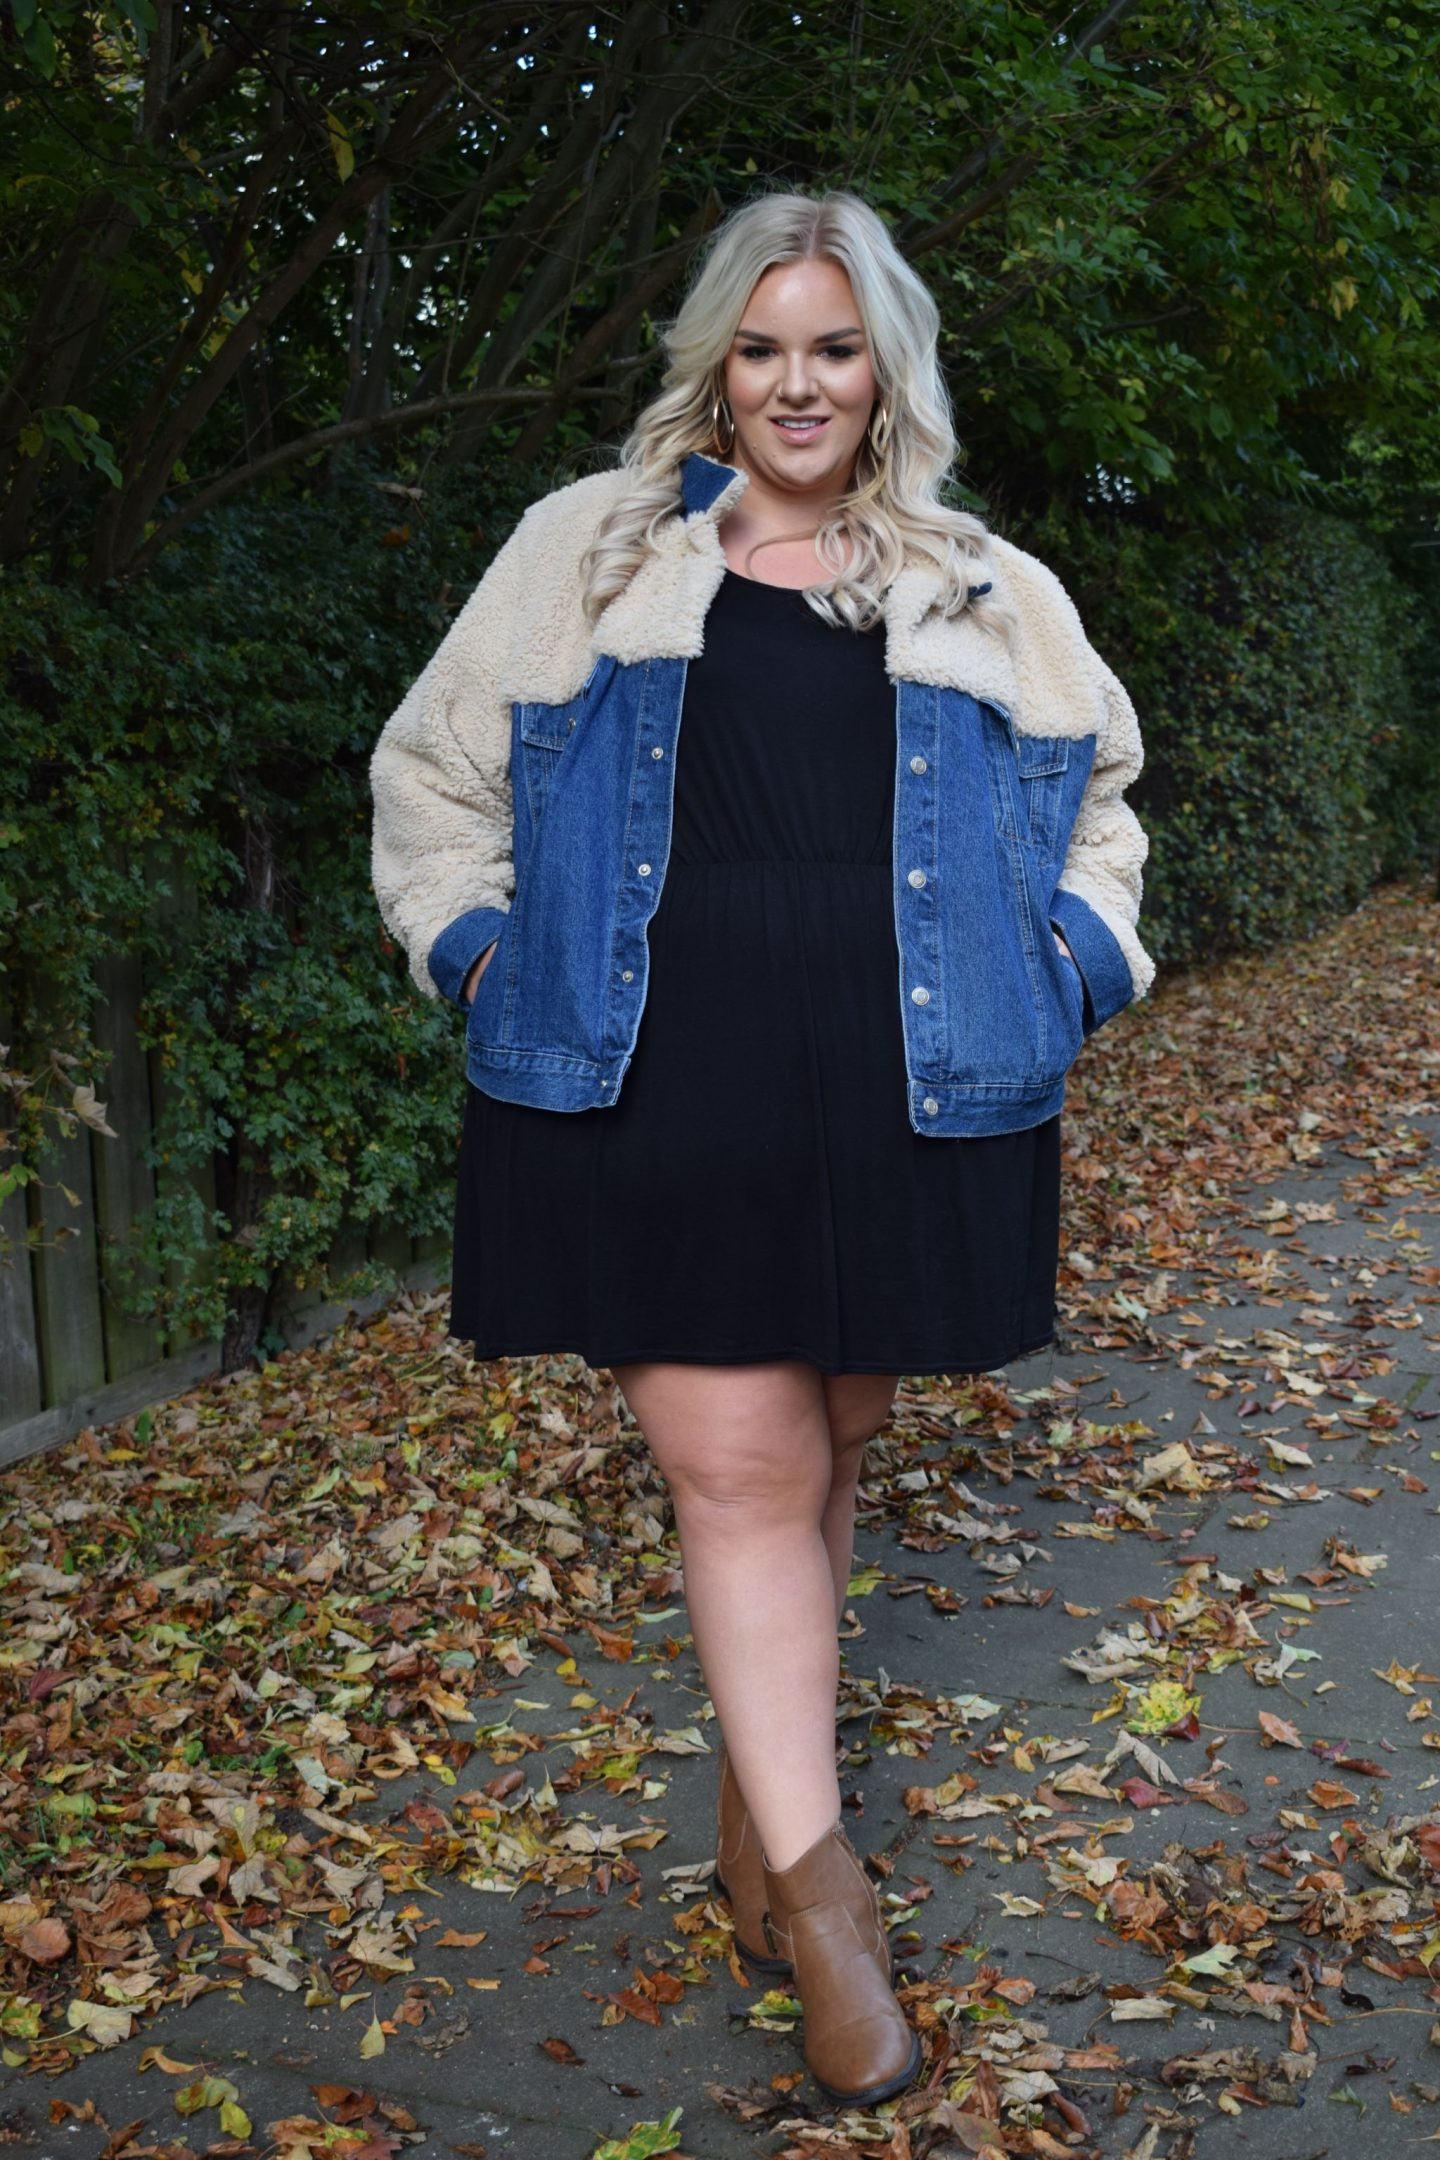 WhatLauraLoves in Dani Dyer In The Style Curve